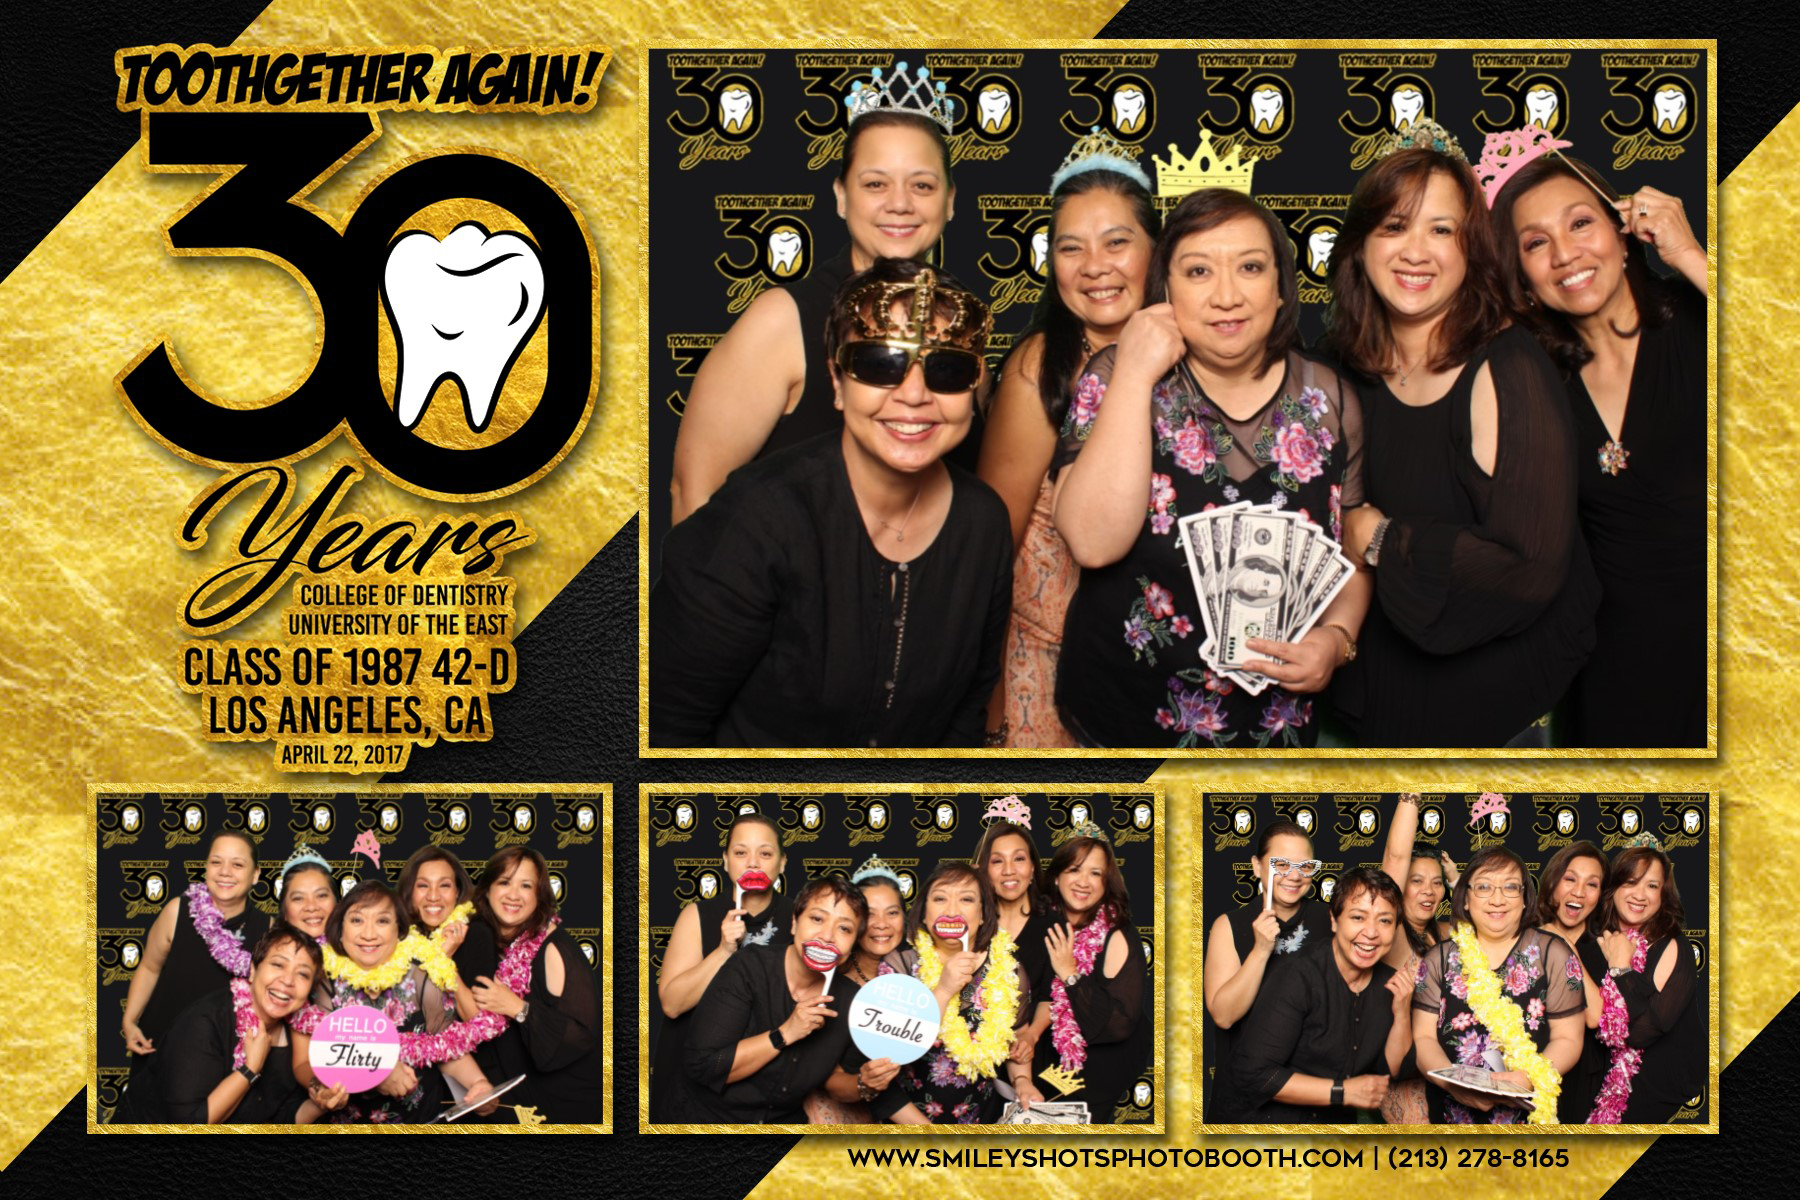 30th Years Dental UE Smiley Shots Photo Booth Photobooth (34).png